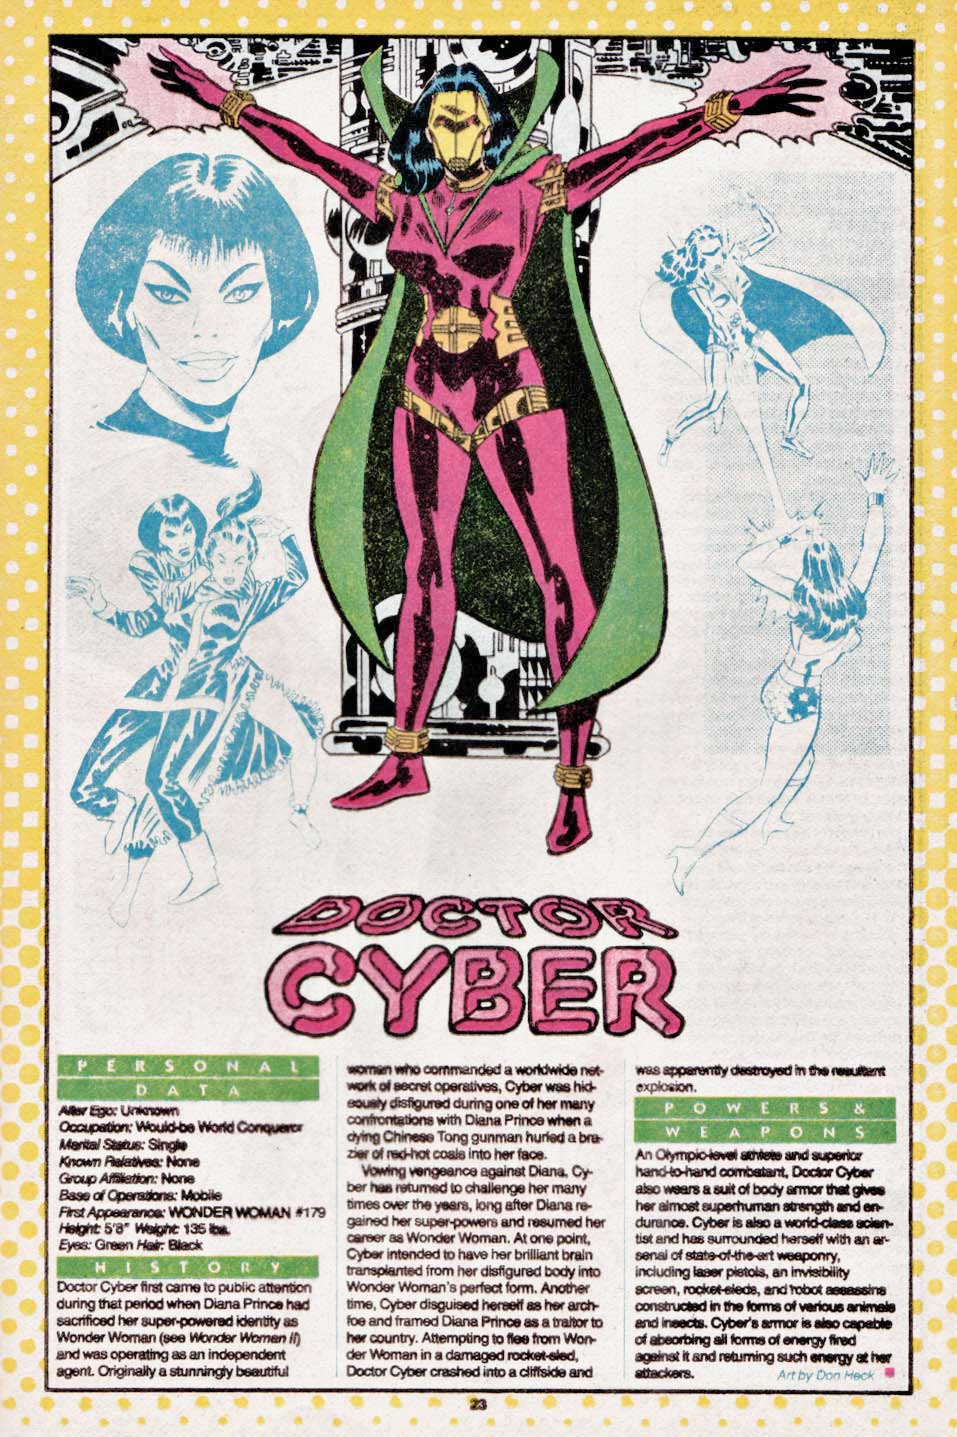 Doctor Cyber by Don Heck - Who's Who: The Definitive Directory of the DC Universe #6